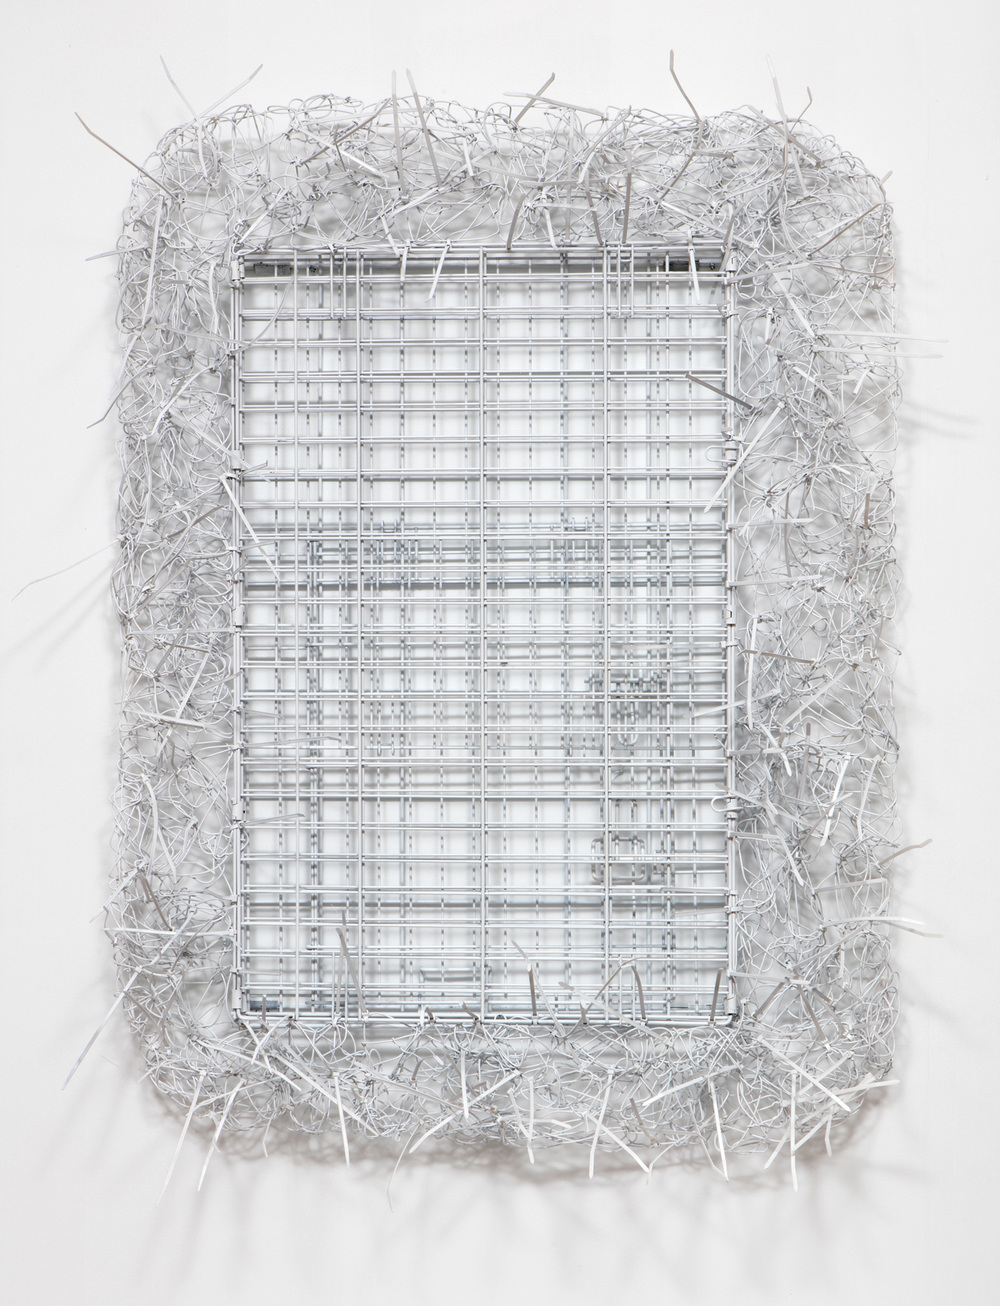 SLATE: Wire Hanger Construction No. 5 (Puck's first crate)  , 2015 Spray paint on wire hangers, zip ties, and medium size dog crate 48 x 36 inches